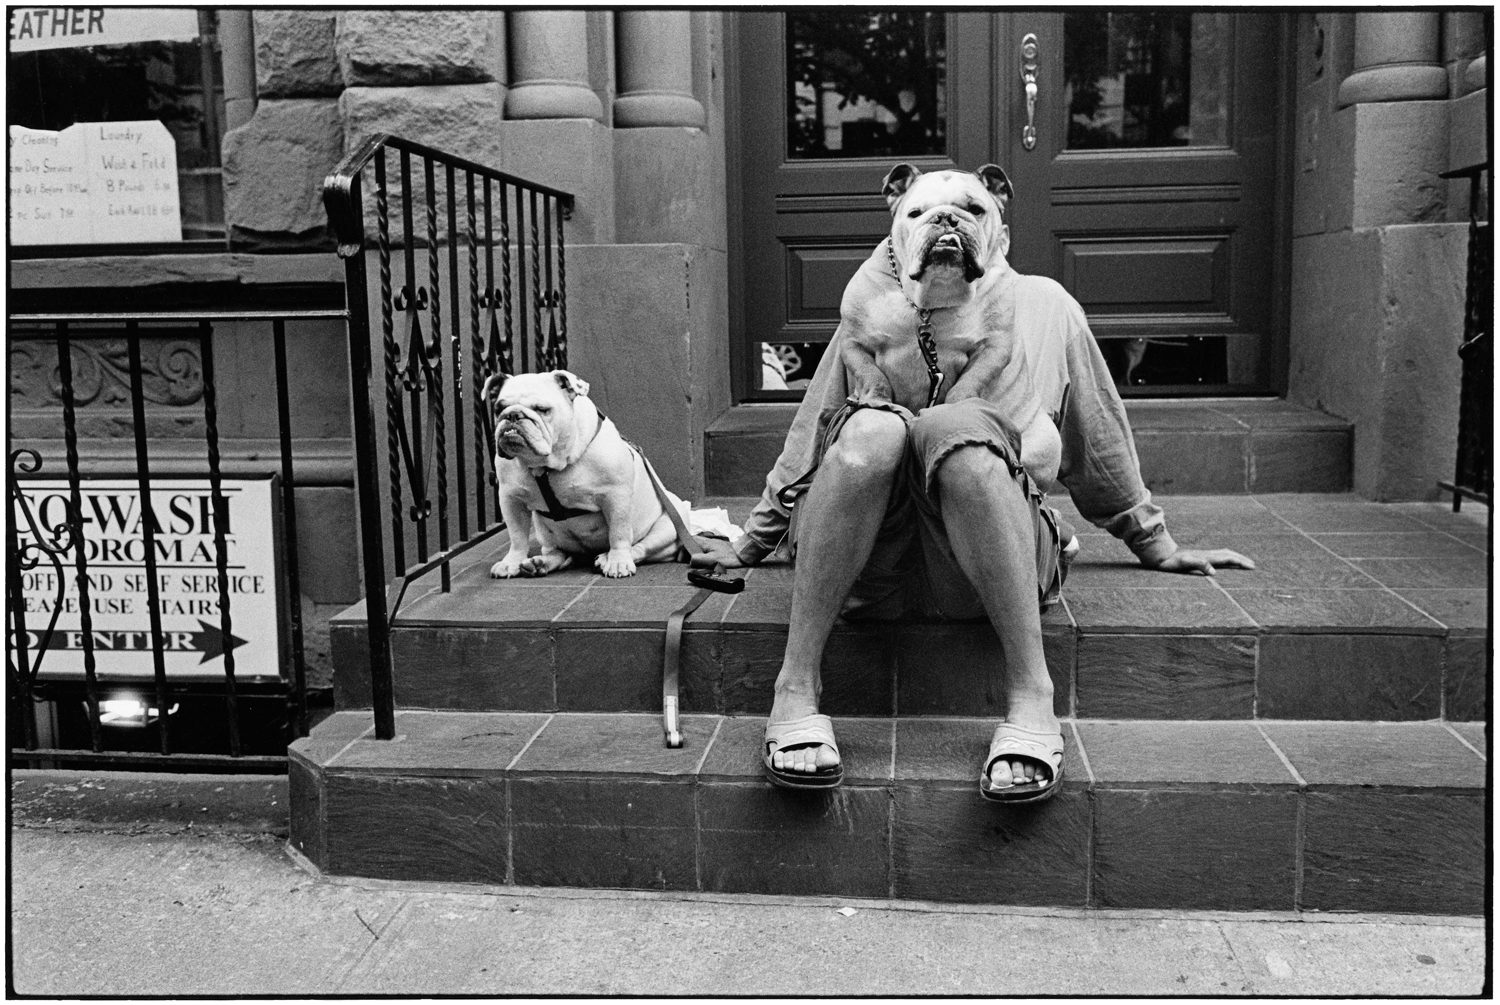 New York City, 2000 (Bulldogs)